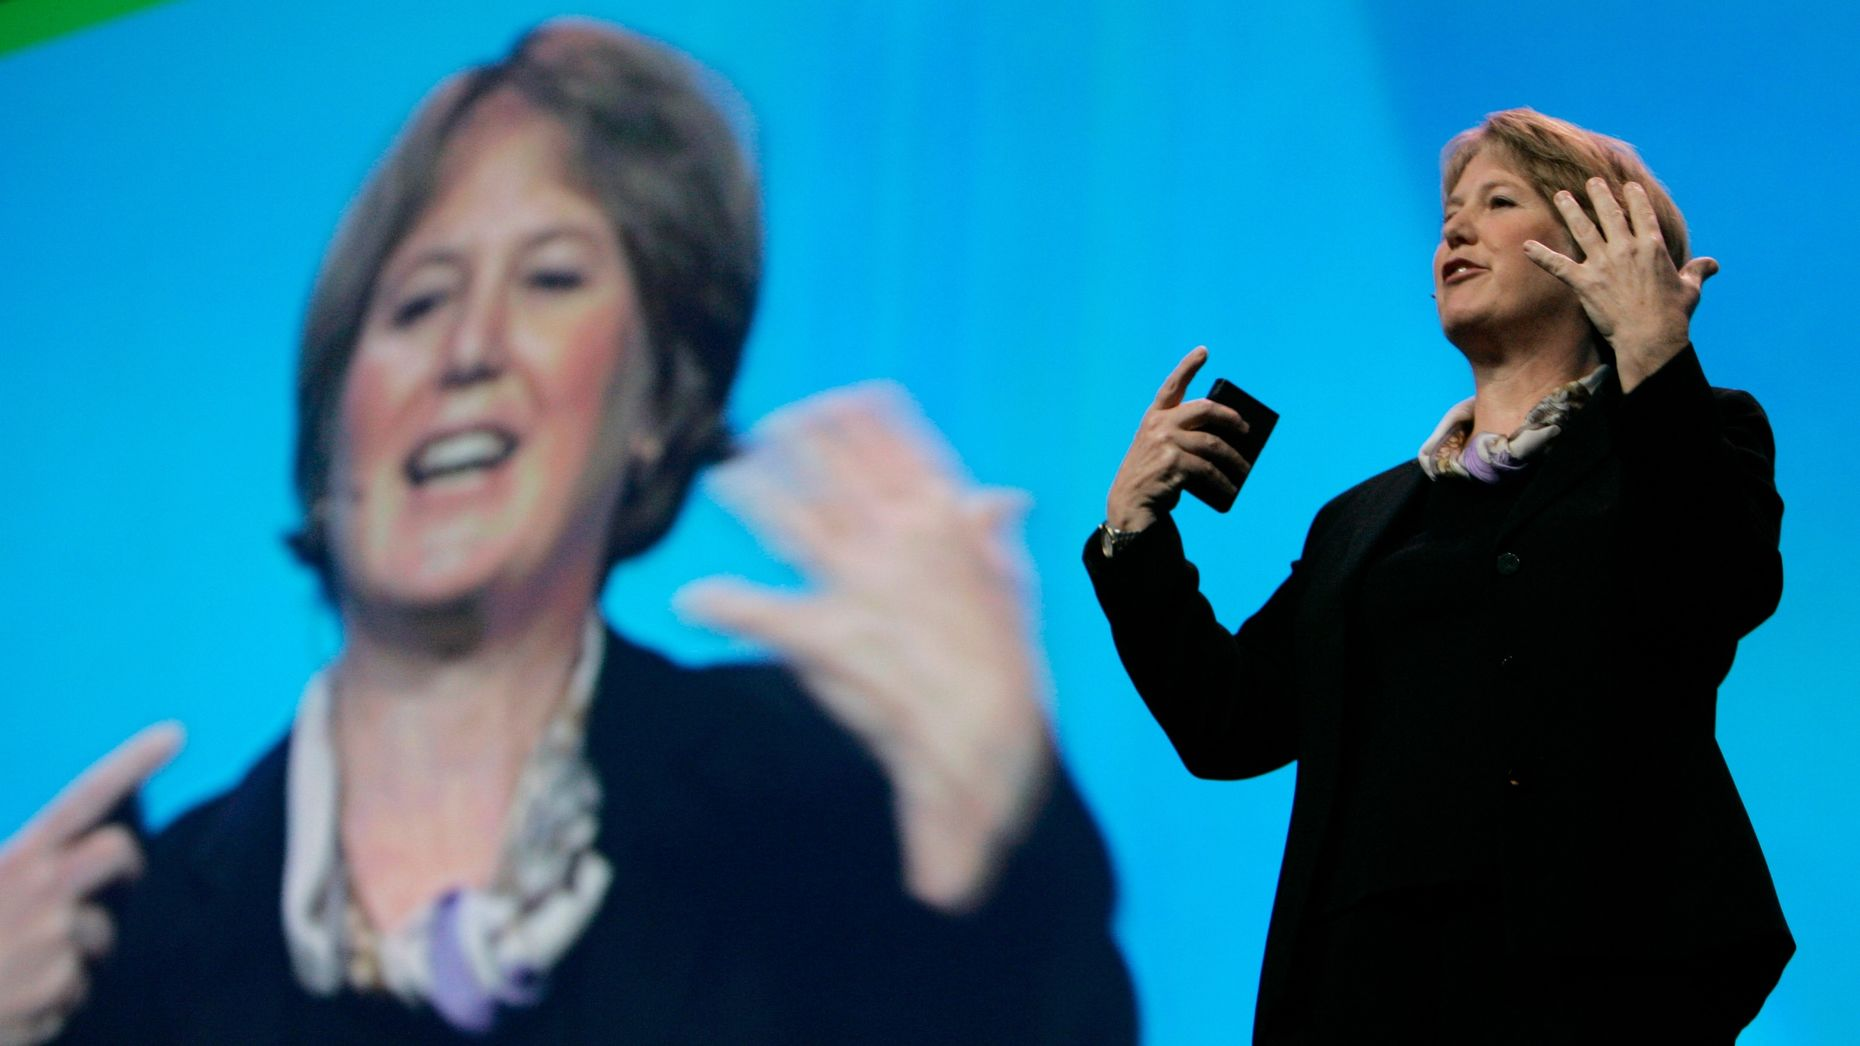 Google Senior Vice President for Enterprise, Diane Greene. Photo by AP.